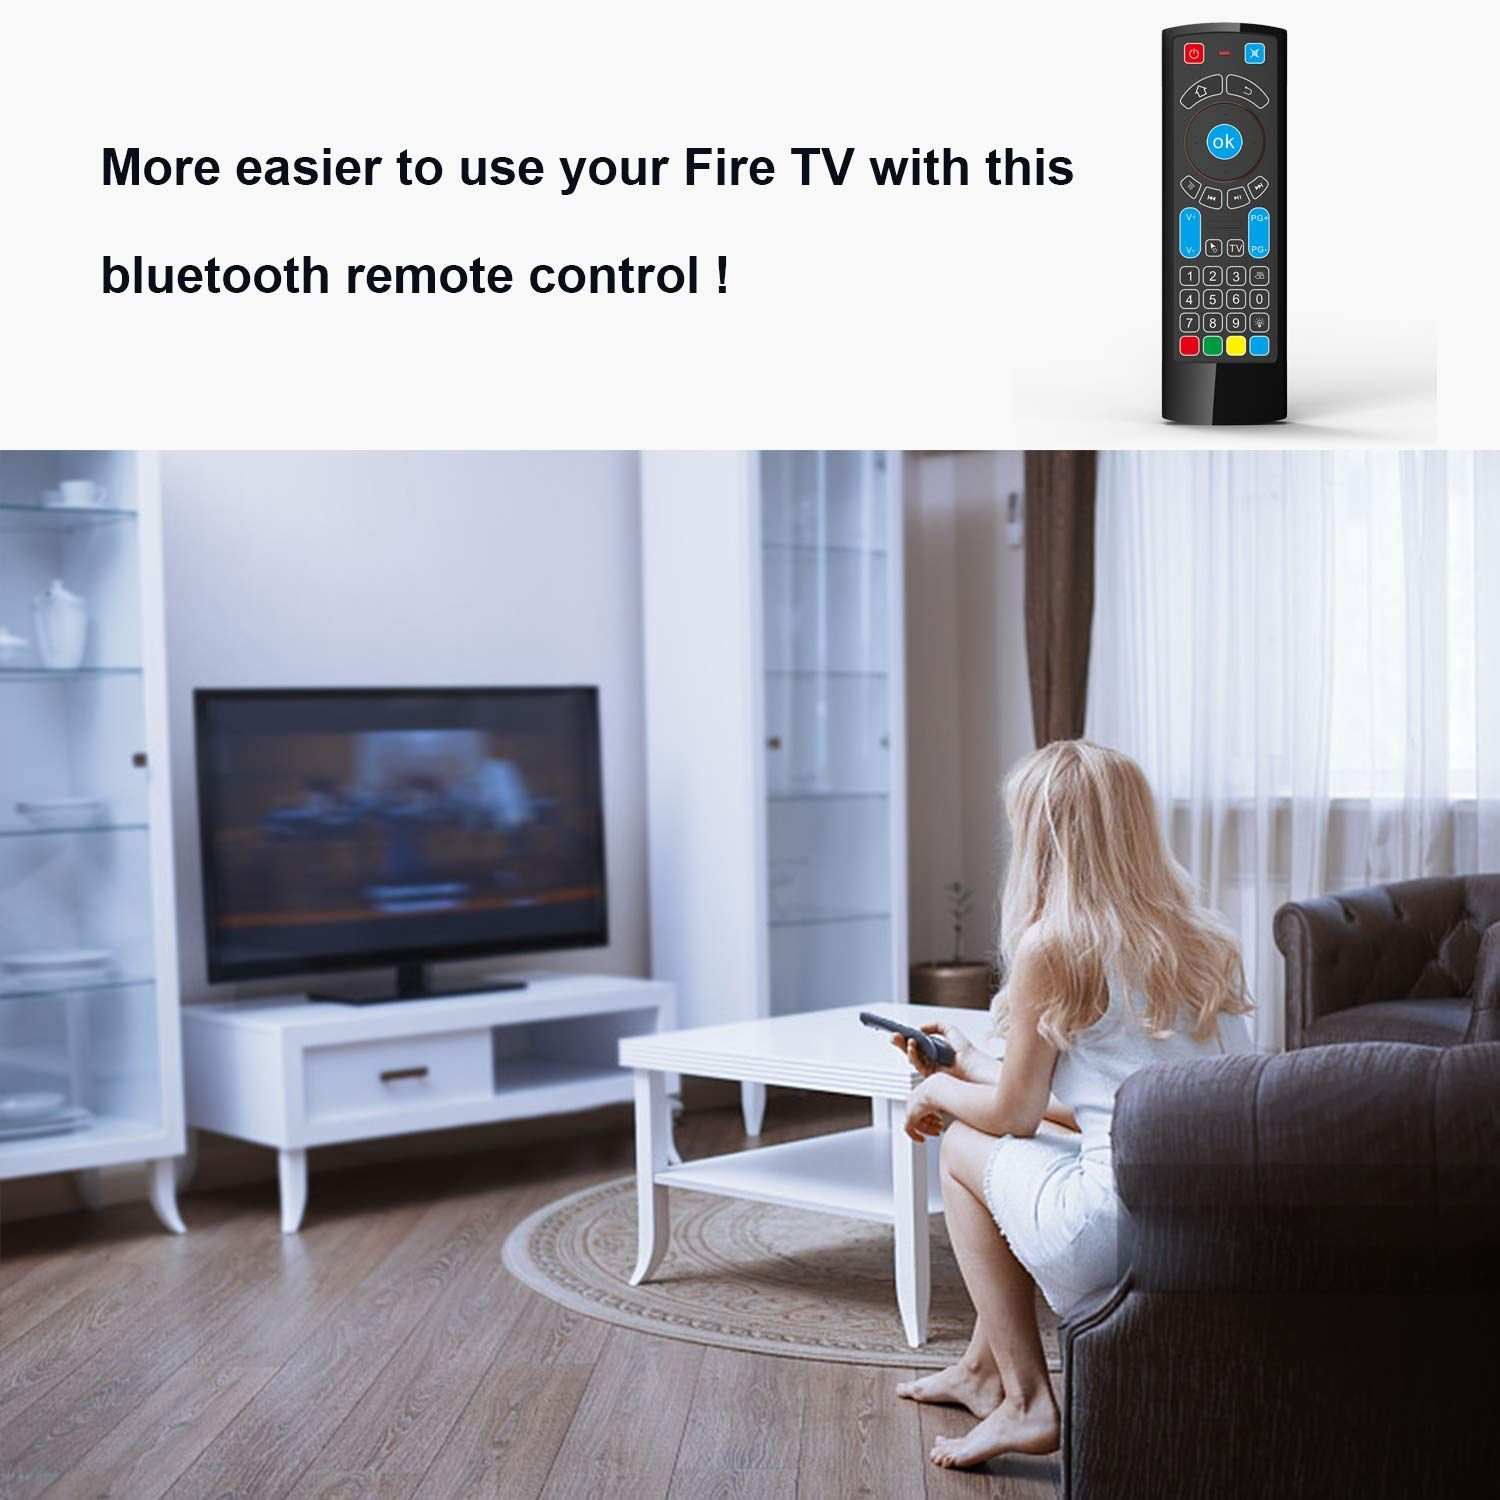 Bluetooth Remote Specifically Compatible With Amazon Fire Tv And Fire Tv Stick Air Remote Control With Keyboard Bluetooth Remote Android Tv Box Fire Tv Stick